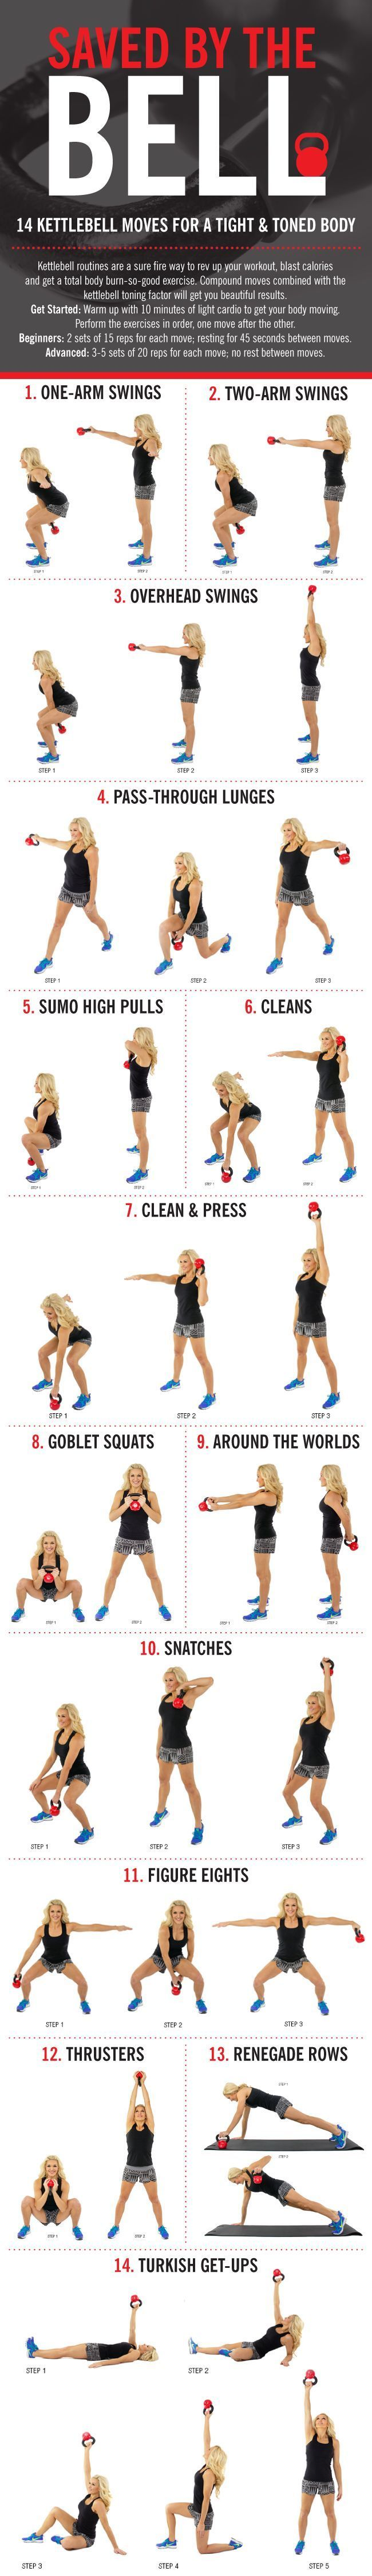 Get ready to feel the burn with this kettlebell workout.